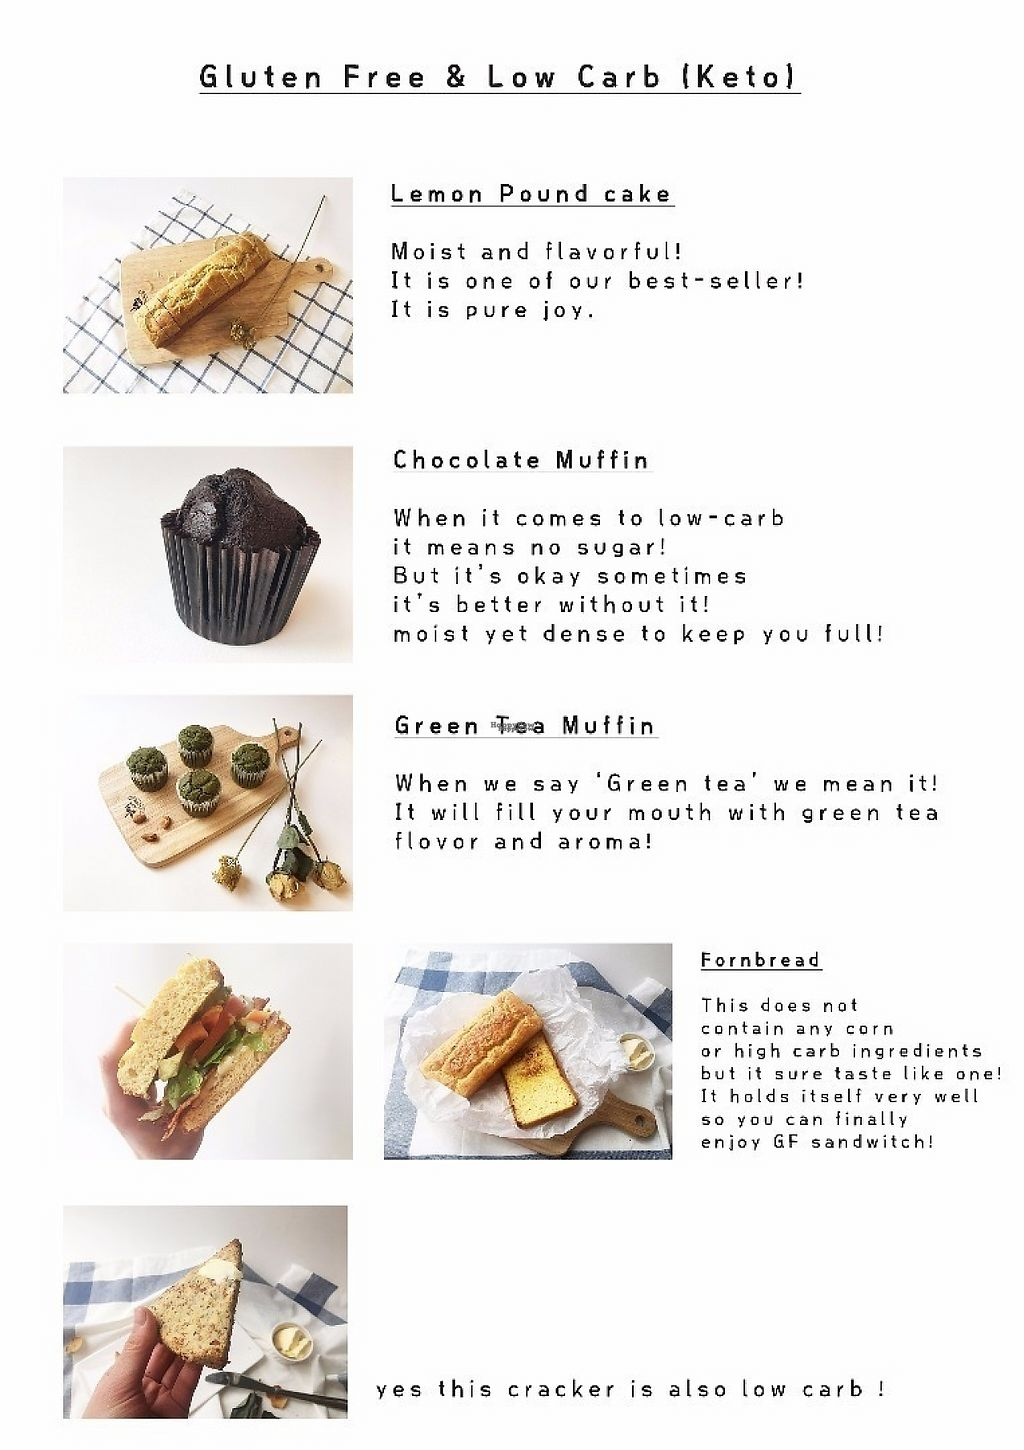 """Photo of Sunny's GF Sweets  by <a href=""""/members/profile/seongrye7"""">seongrye7</a> <br/>Low Carb menu (warning! It contain eggs!) <br/> January 23, 2017  - <a href='/contact/abuse/image/85908/215238'>Report</a>"""